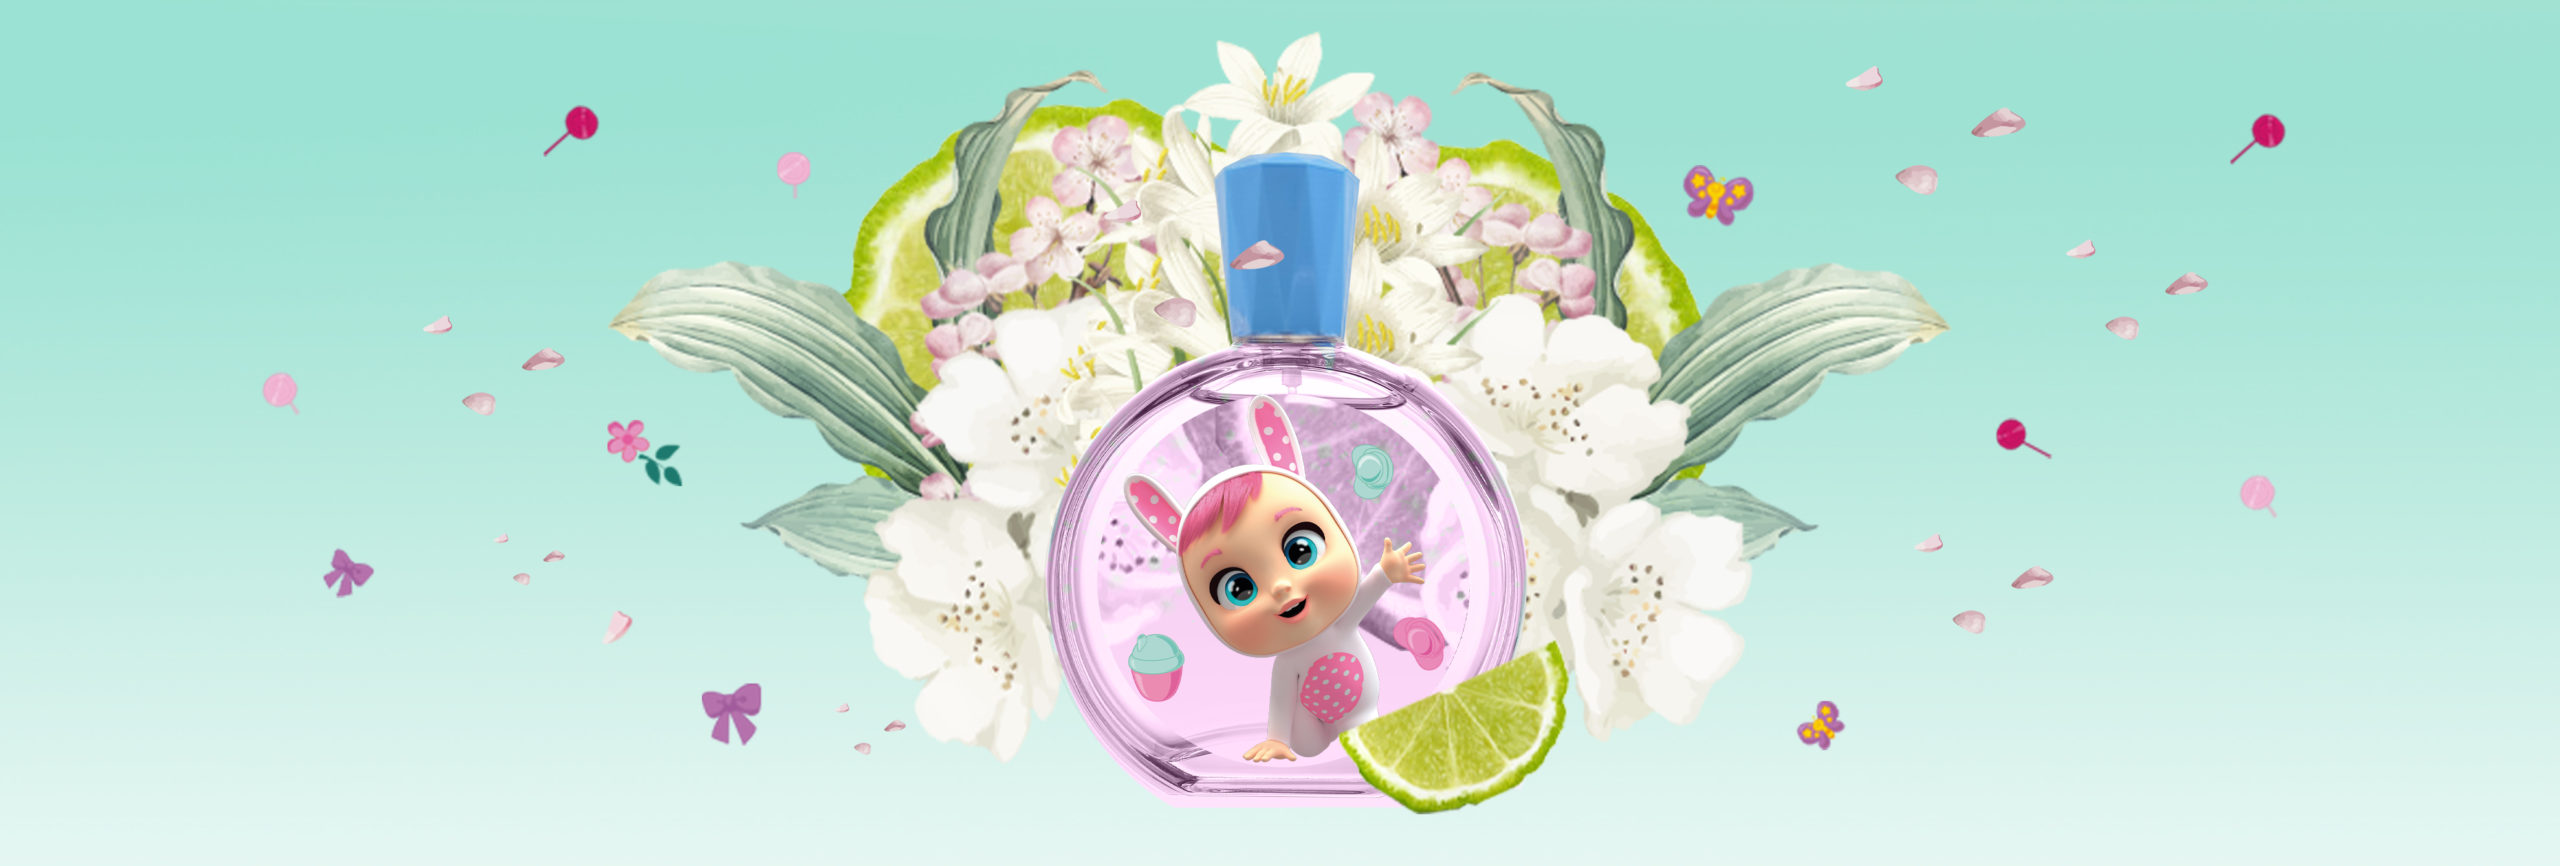 The Cry Babies fragrances